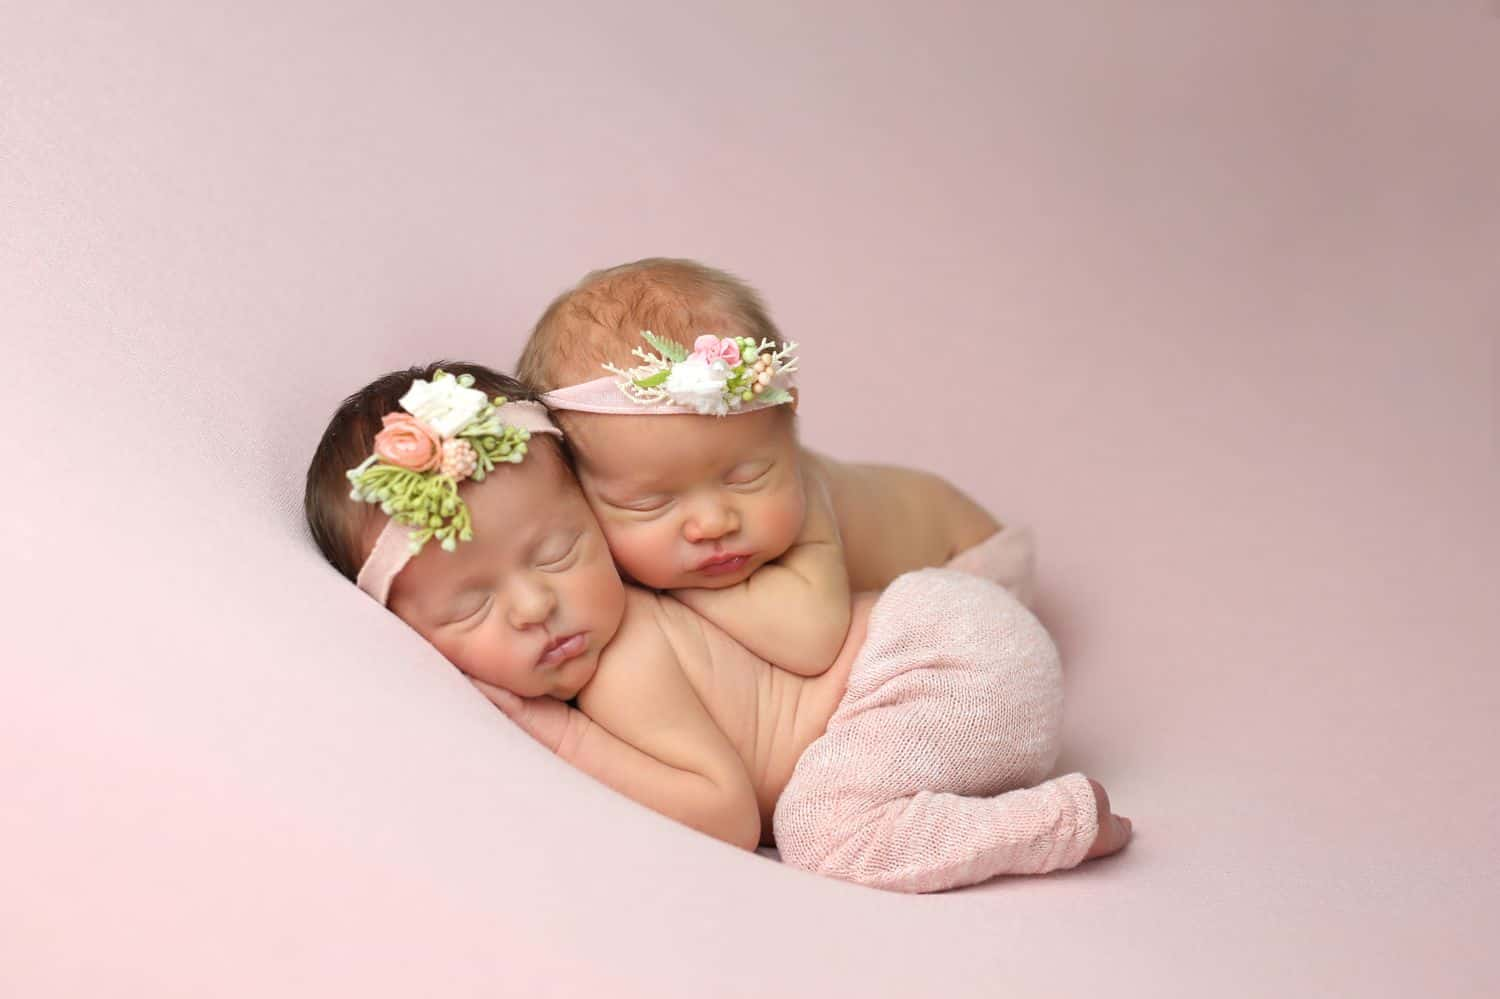 How To Attract New Clients In 3 Bold Business Moves: Twin newborns by Cassie Clayshulte